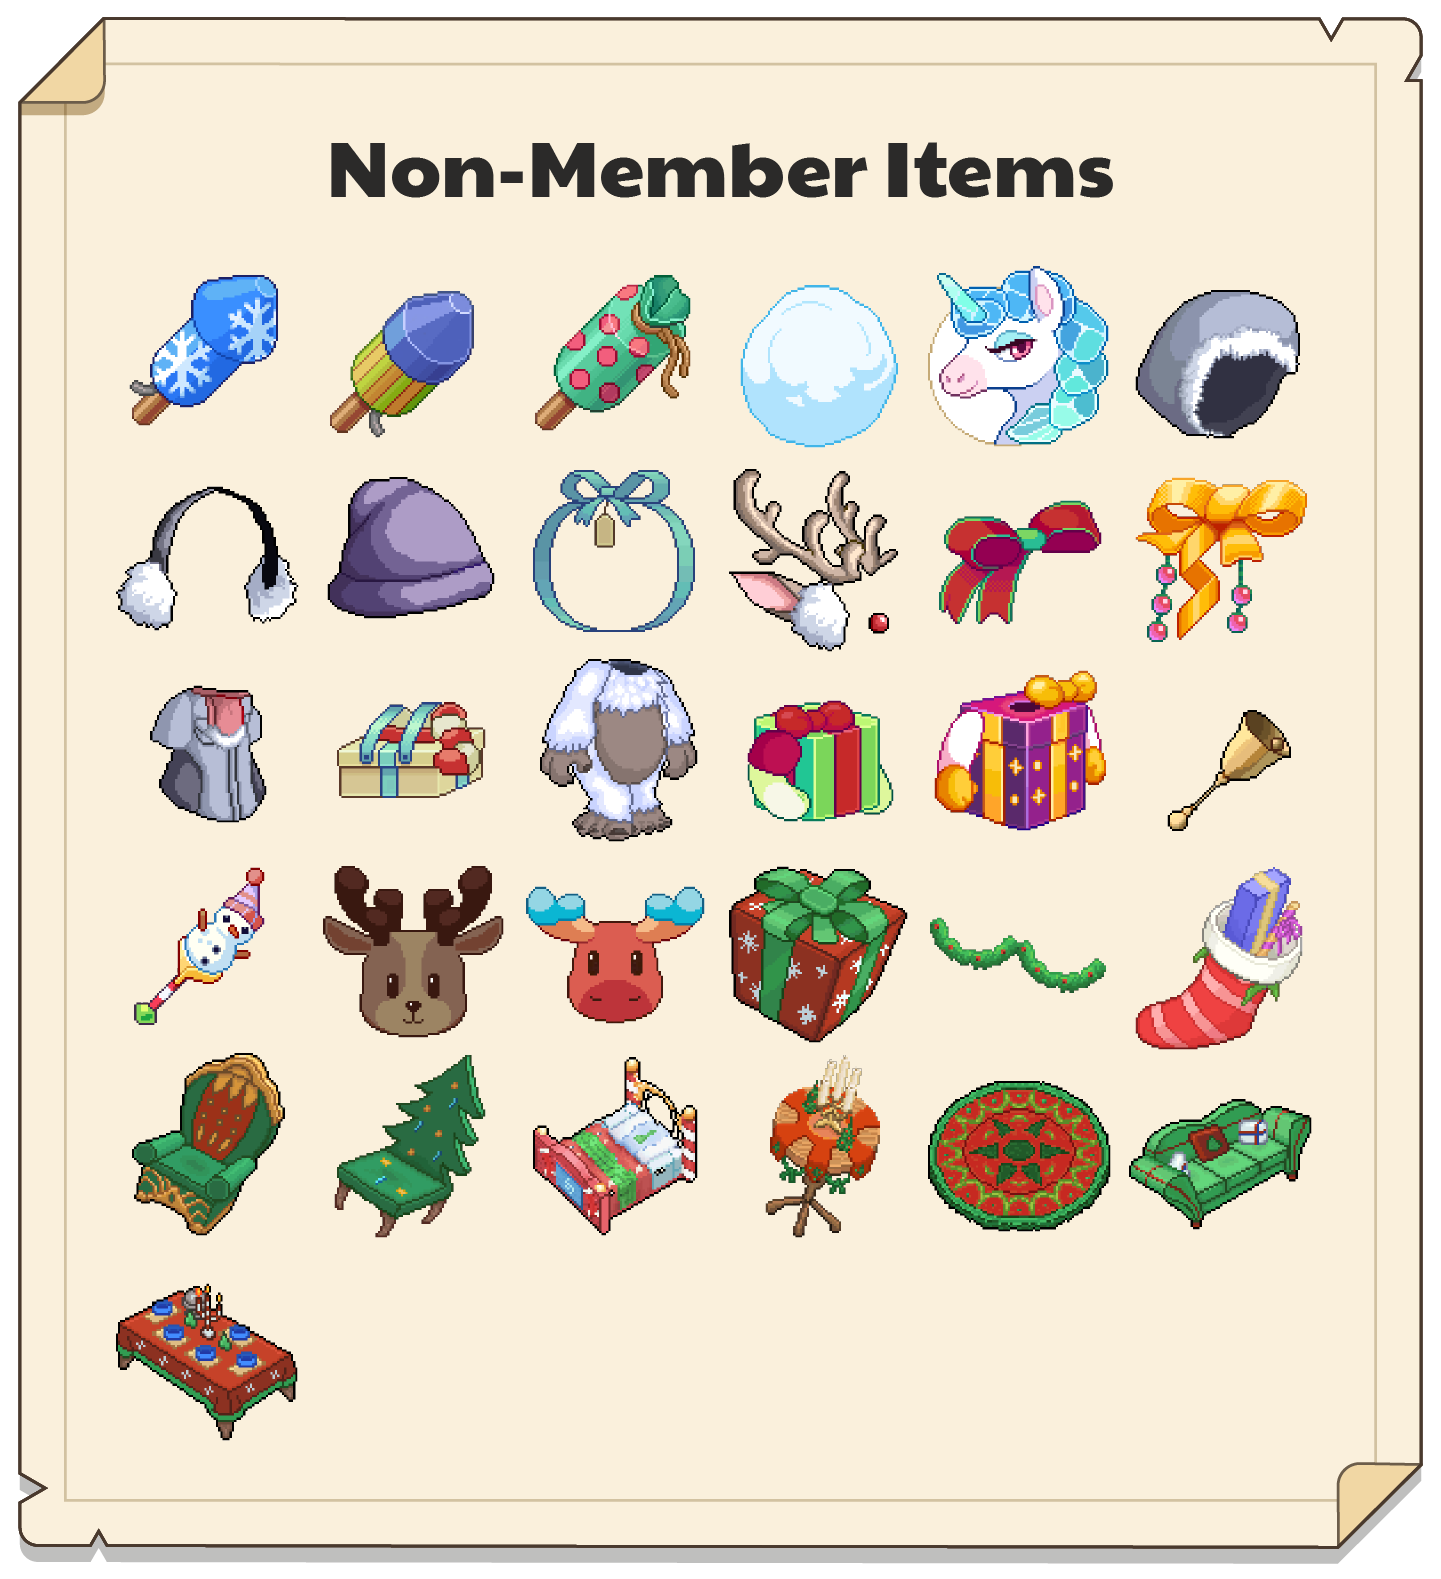 In-game Winterfest items for non-members.